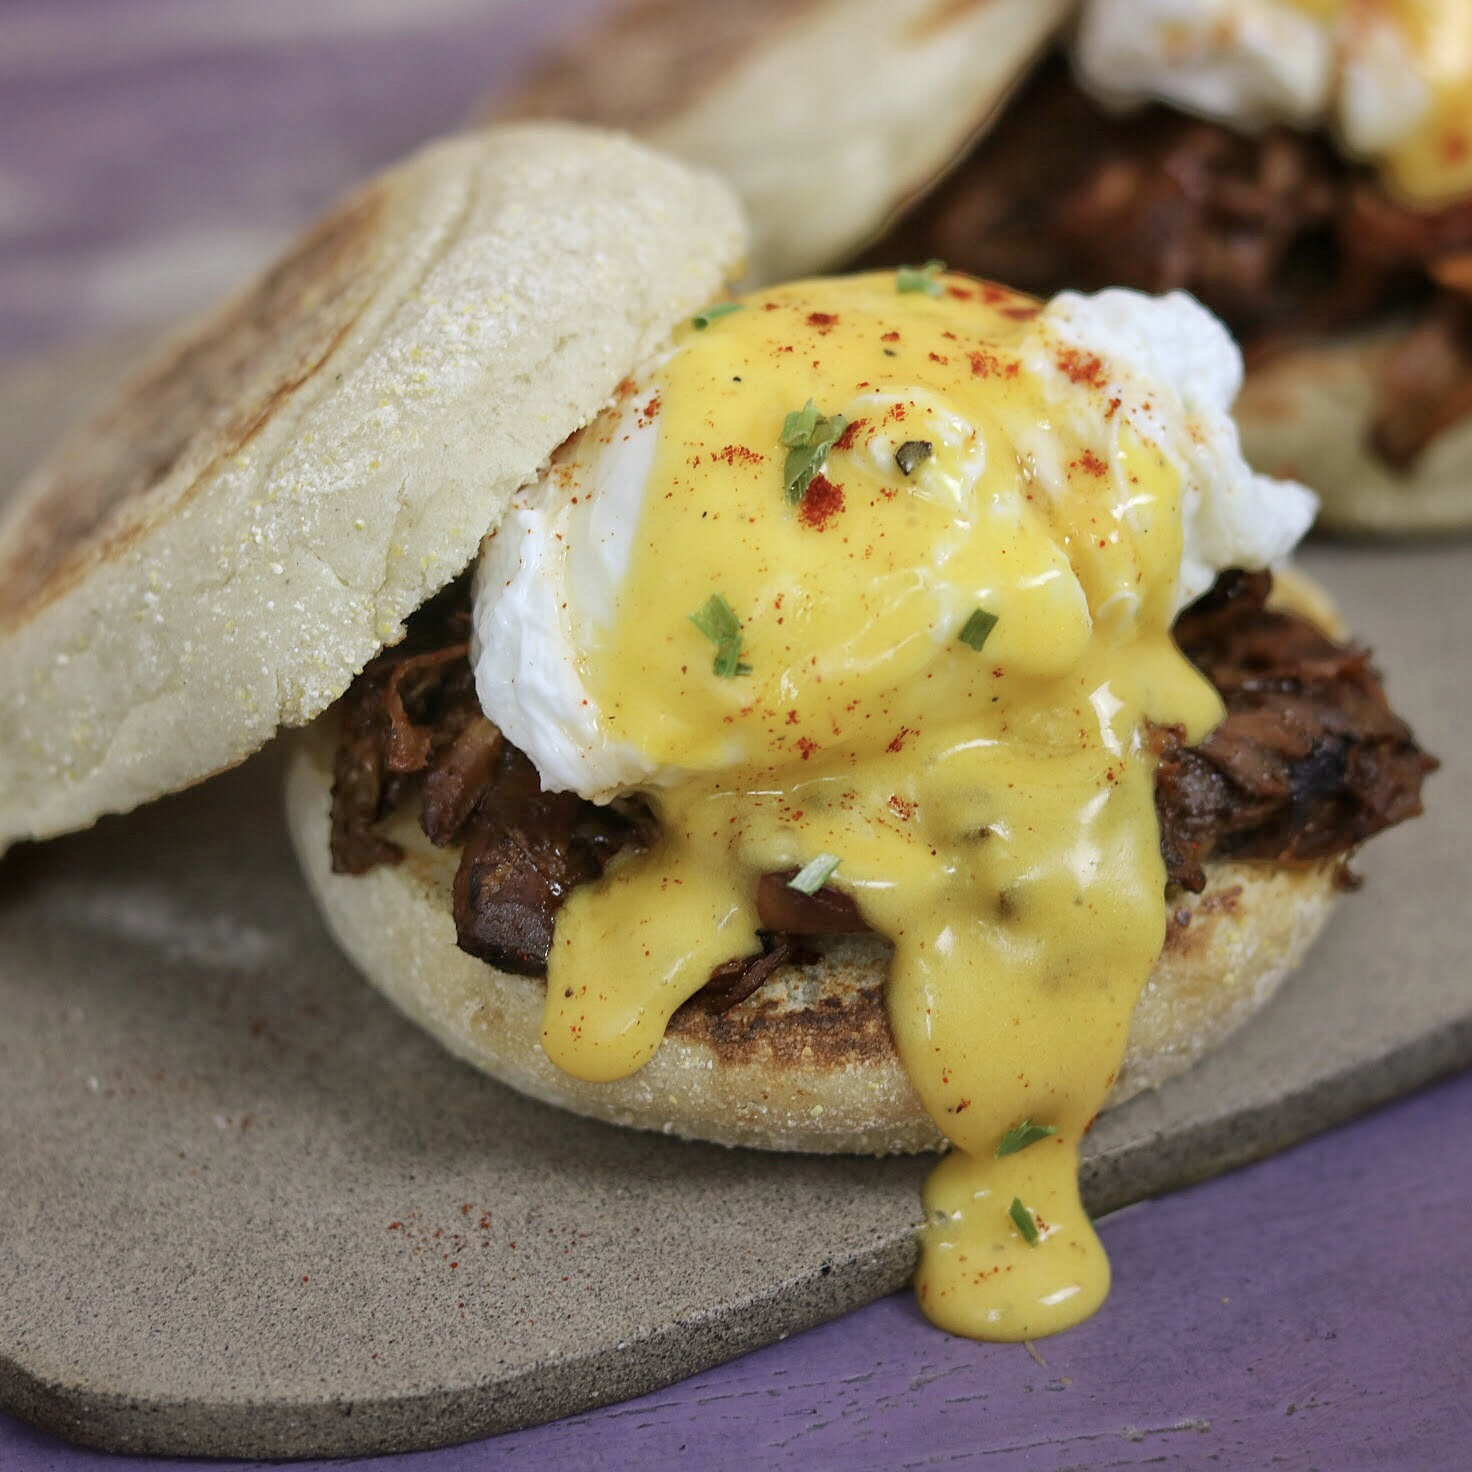 A citrus pulled pork eggs benedict